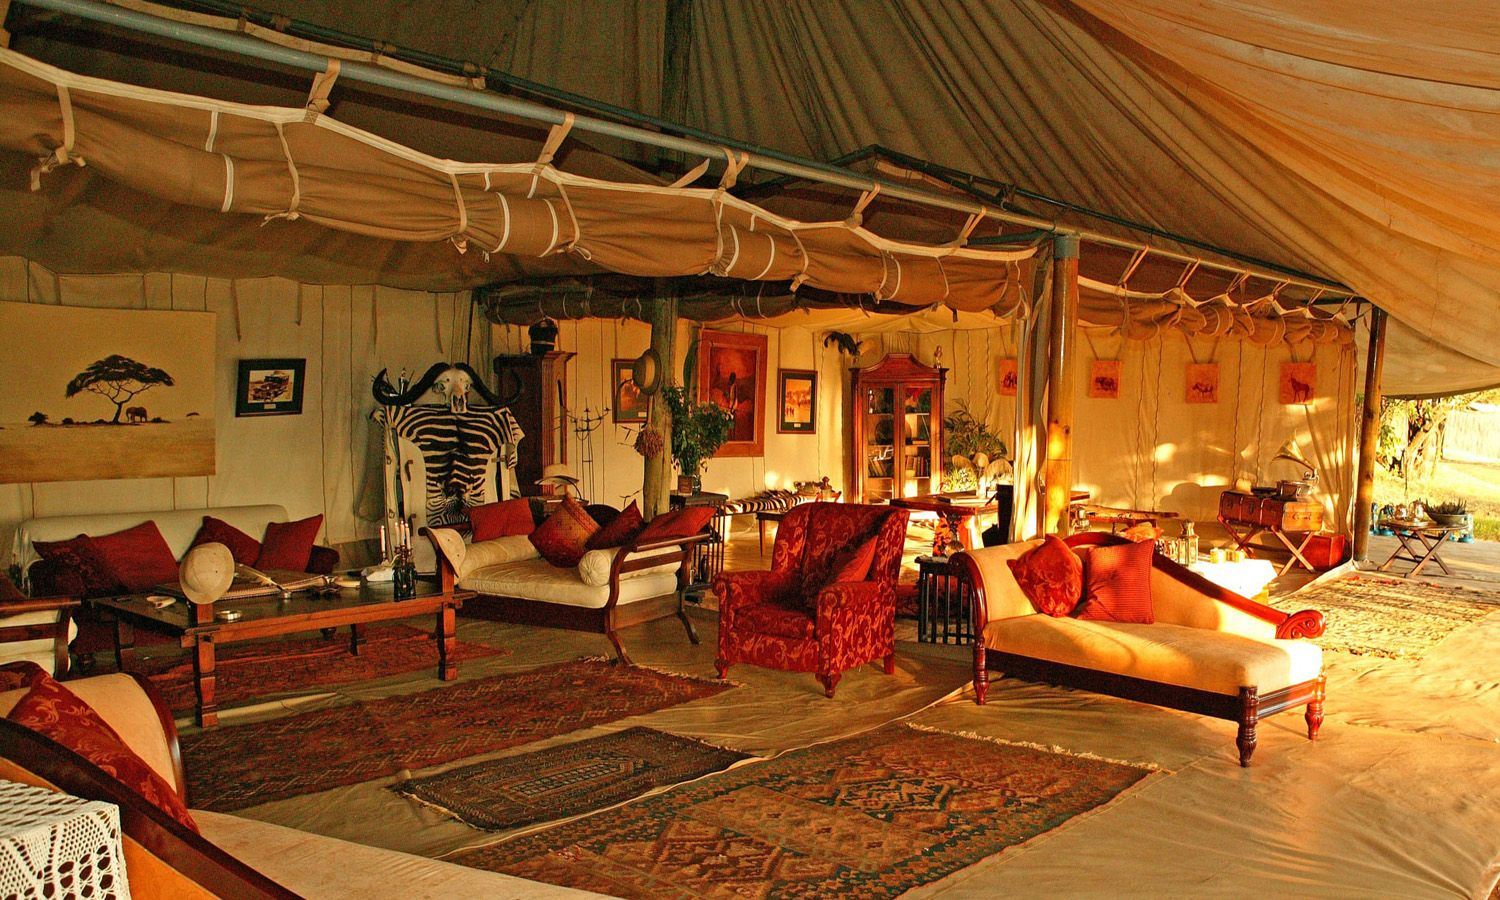 Ar $1000+ per night, I think I'll just use the inspiration for my deck, and keep dreaming. Wow. #Safaristyle  Cottars 1920s Camp Gallery - Cottars Safari Service